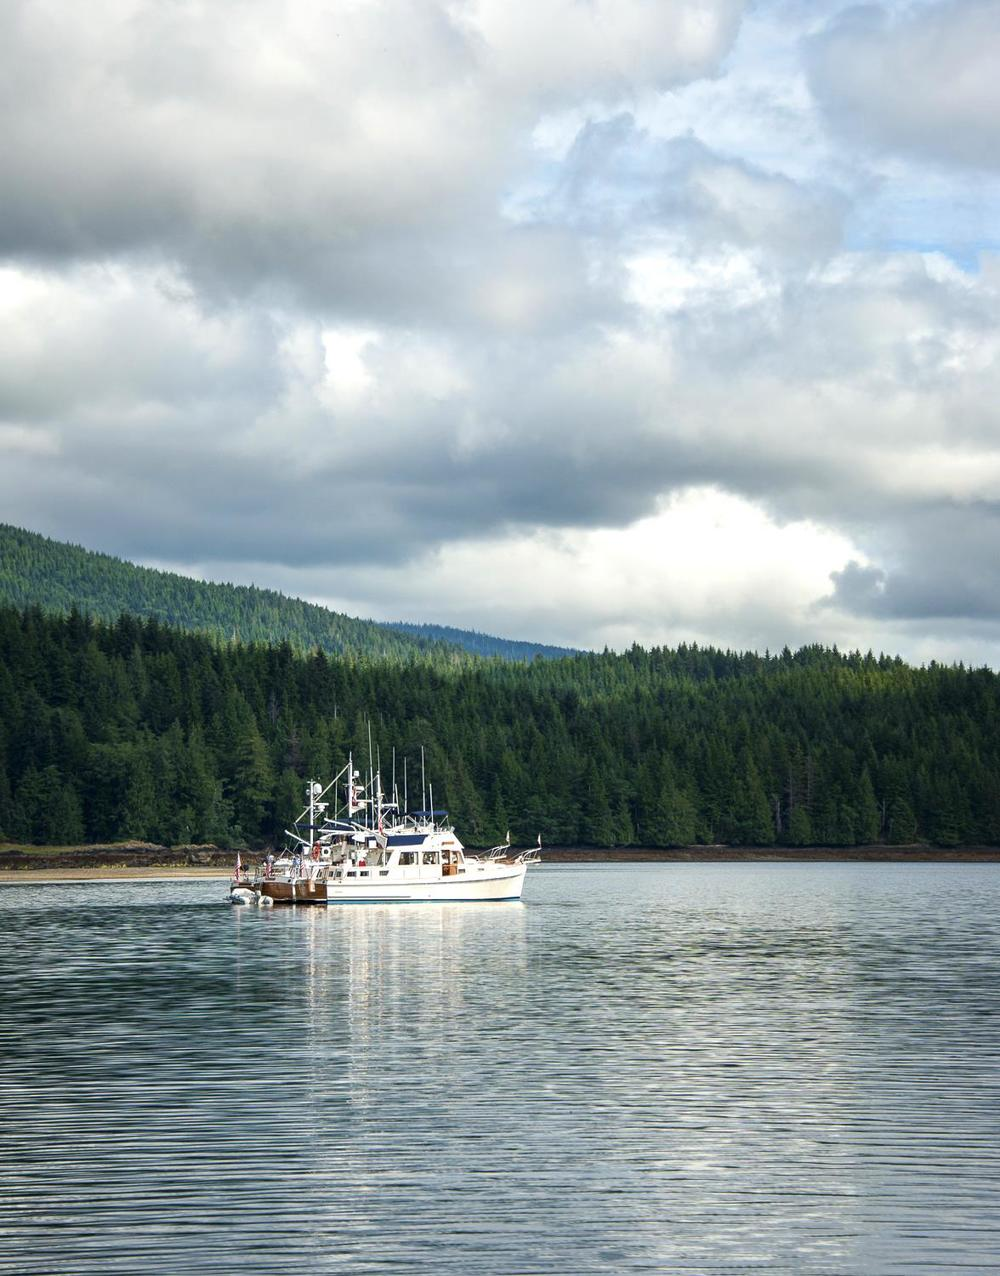 Part of the fleet anchored in Crescent Inlet